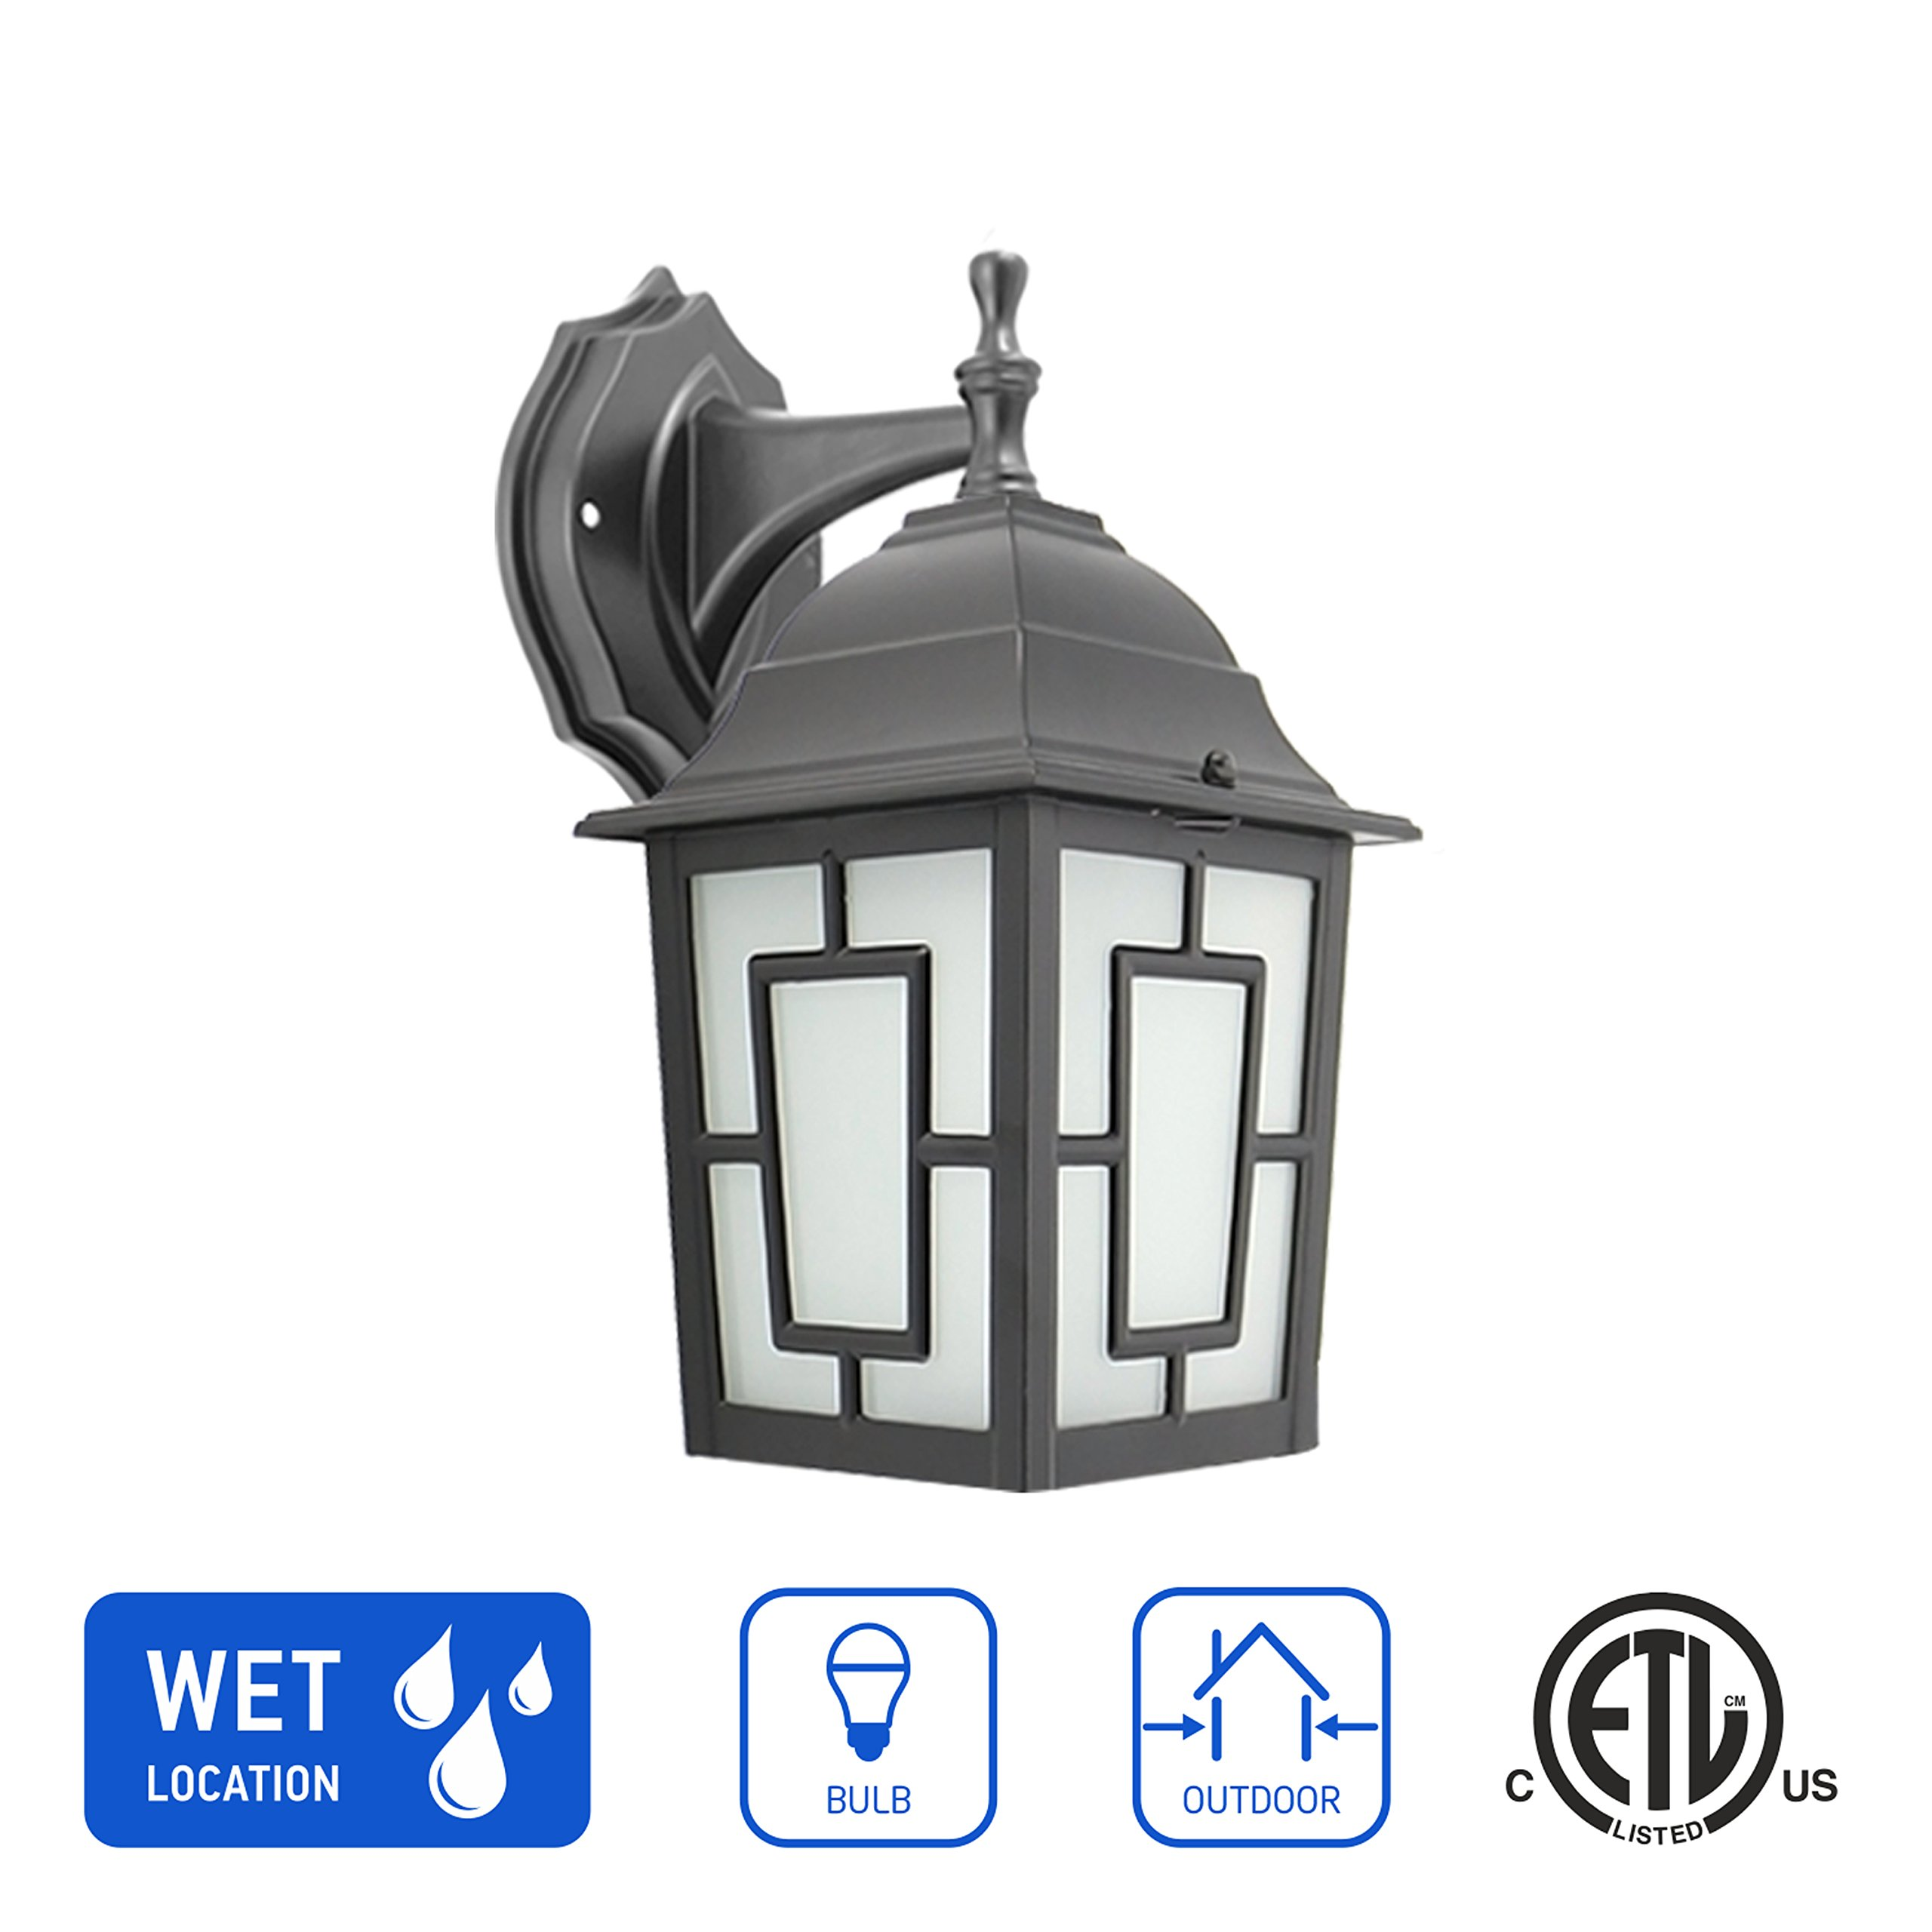 in Home 1-Light Outdoor Wall Mount Lantern Downward Fixture L05 Series Traditional Design Black Finish, Frosted Glass Shade, ETL Listed by IN HOME